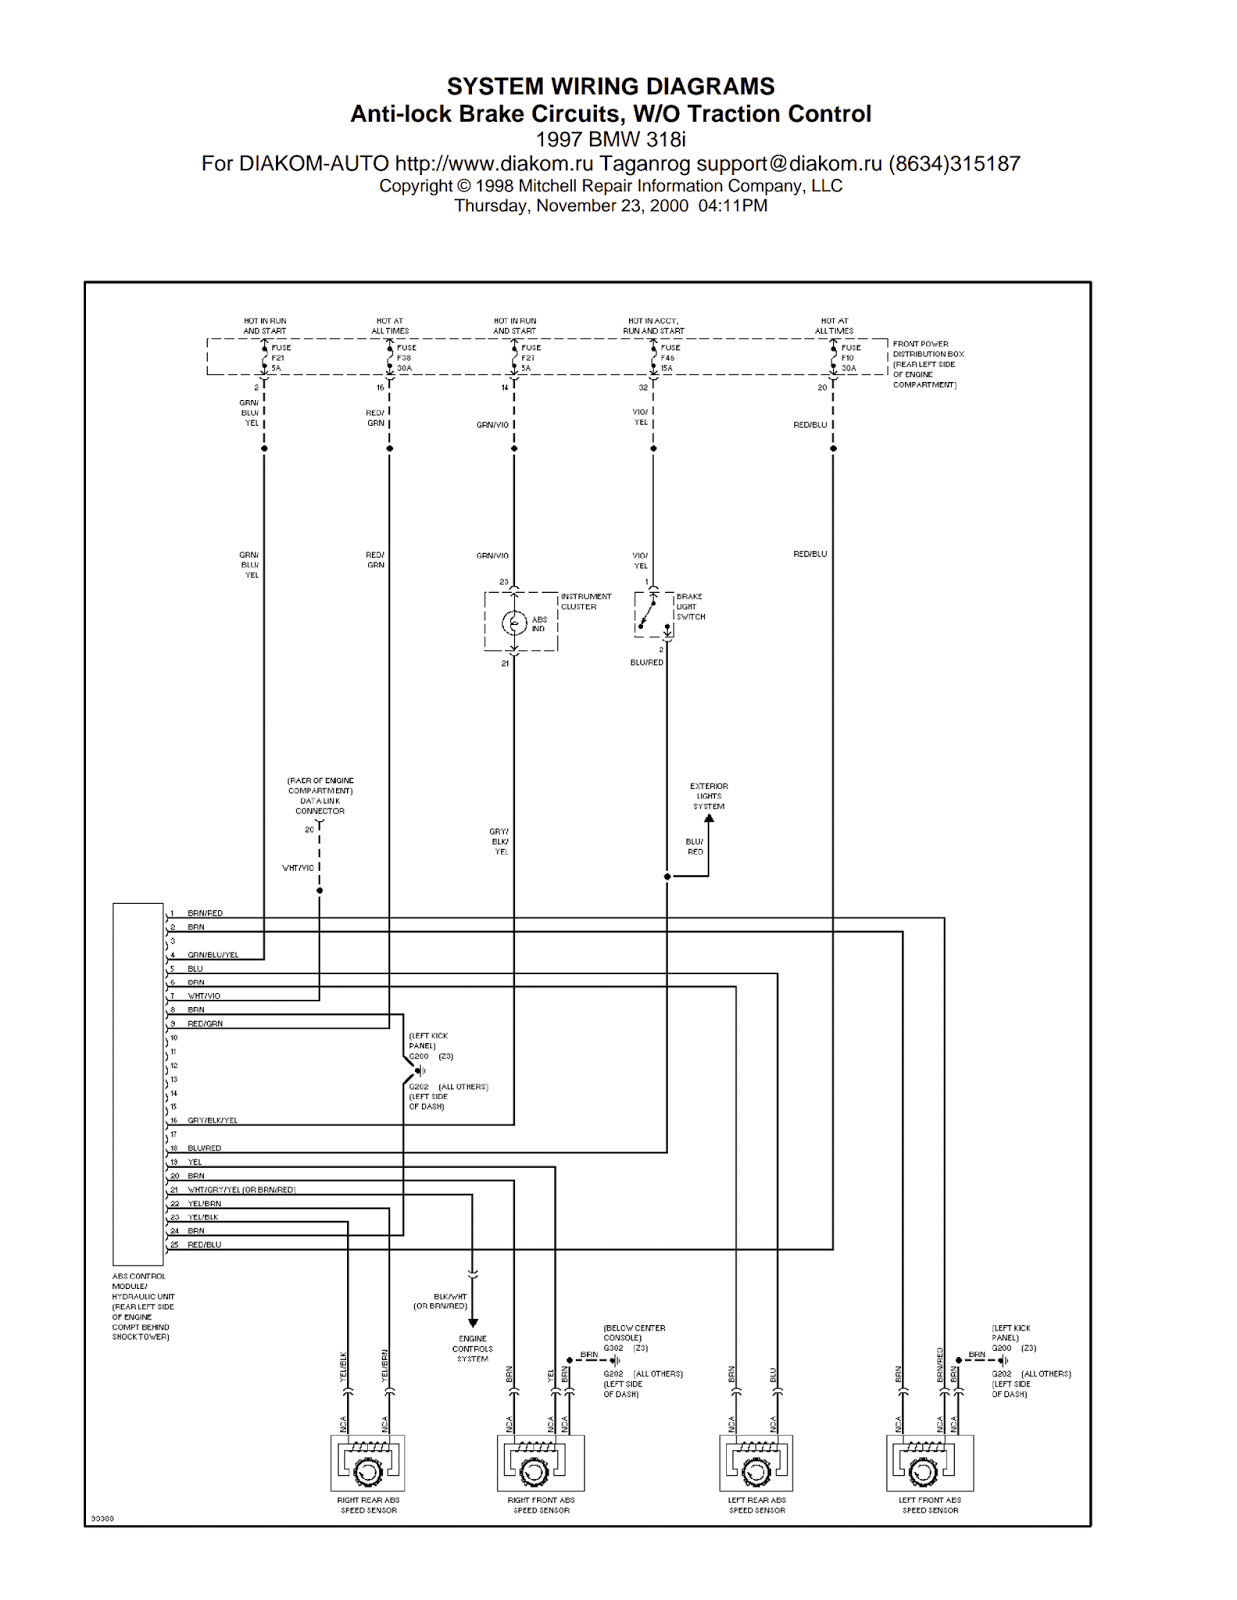 Wiring Diagrams And Free Manual Ebooks  1997 Bmw 318i Anti